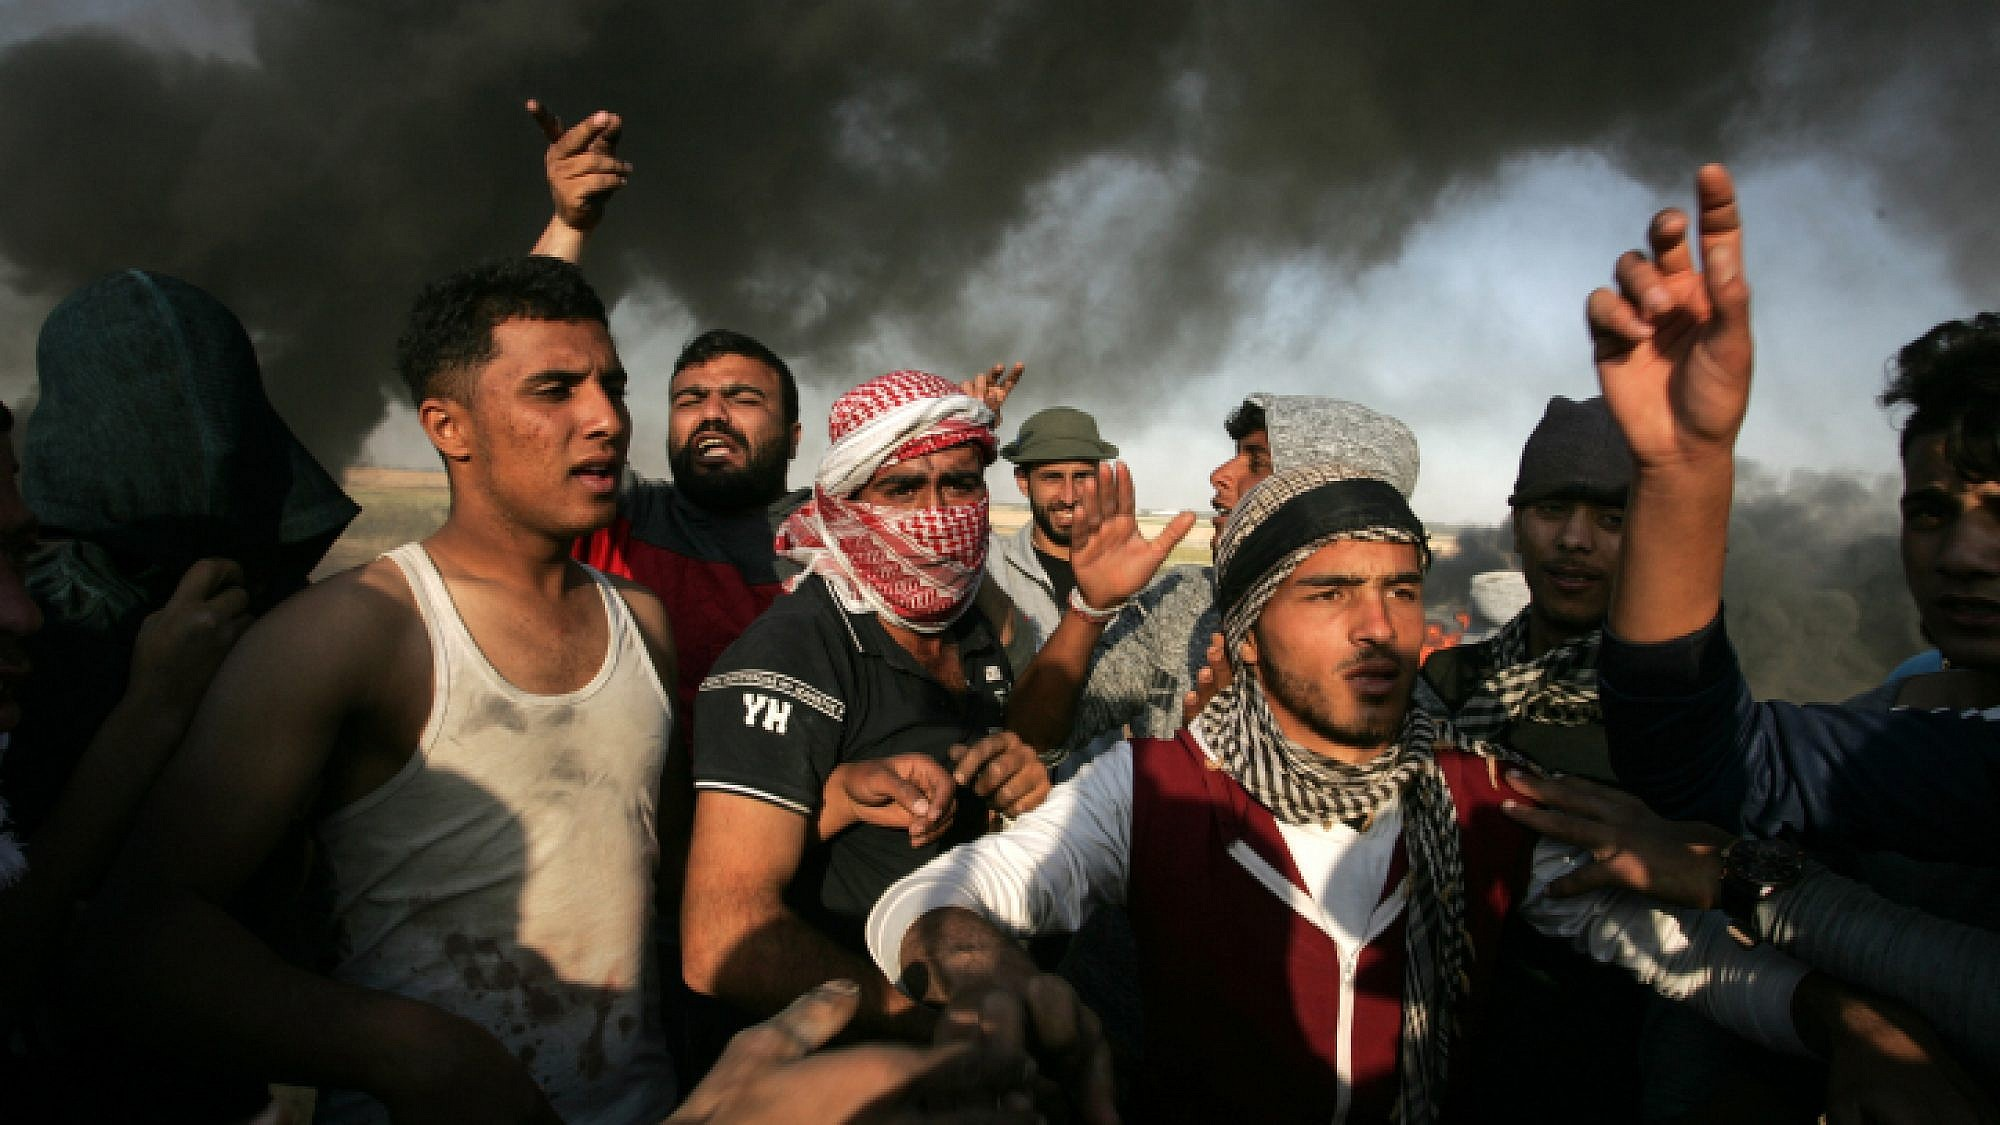 Palestinian protesters during clashes with Israeli security forces near the border with Israel, east of Khan Yunis, in the southern Gaza Strip, on April 1, 2018. Photo by Abed Rahim Khatib/Flash90